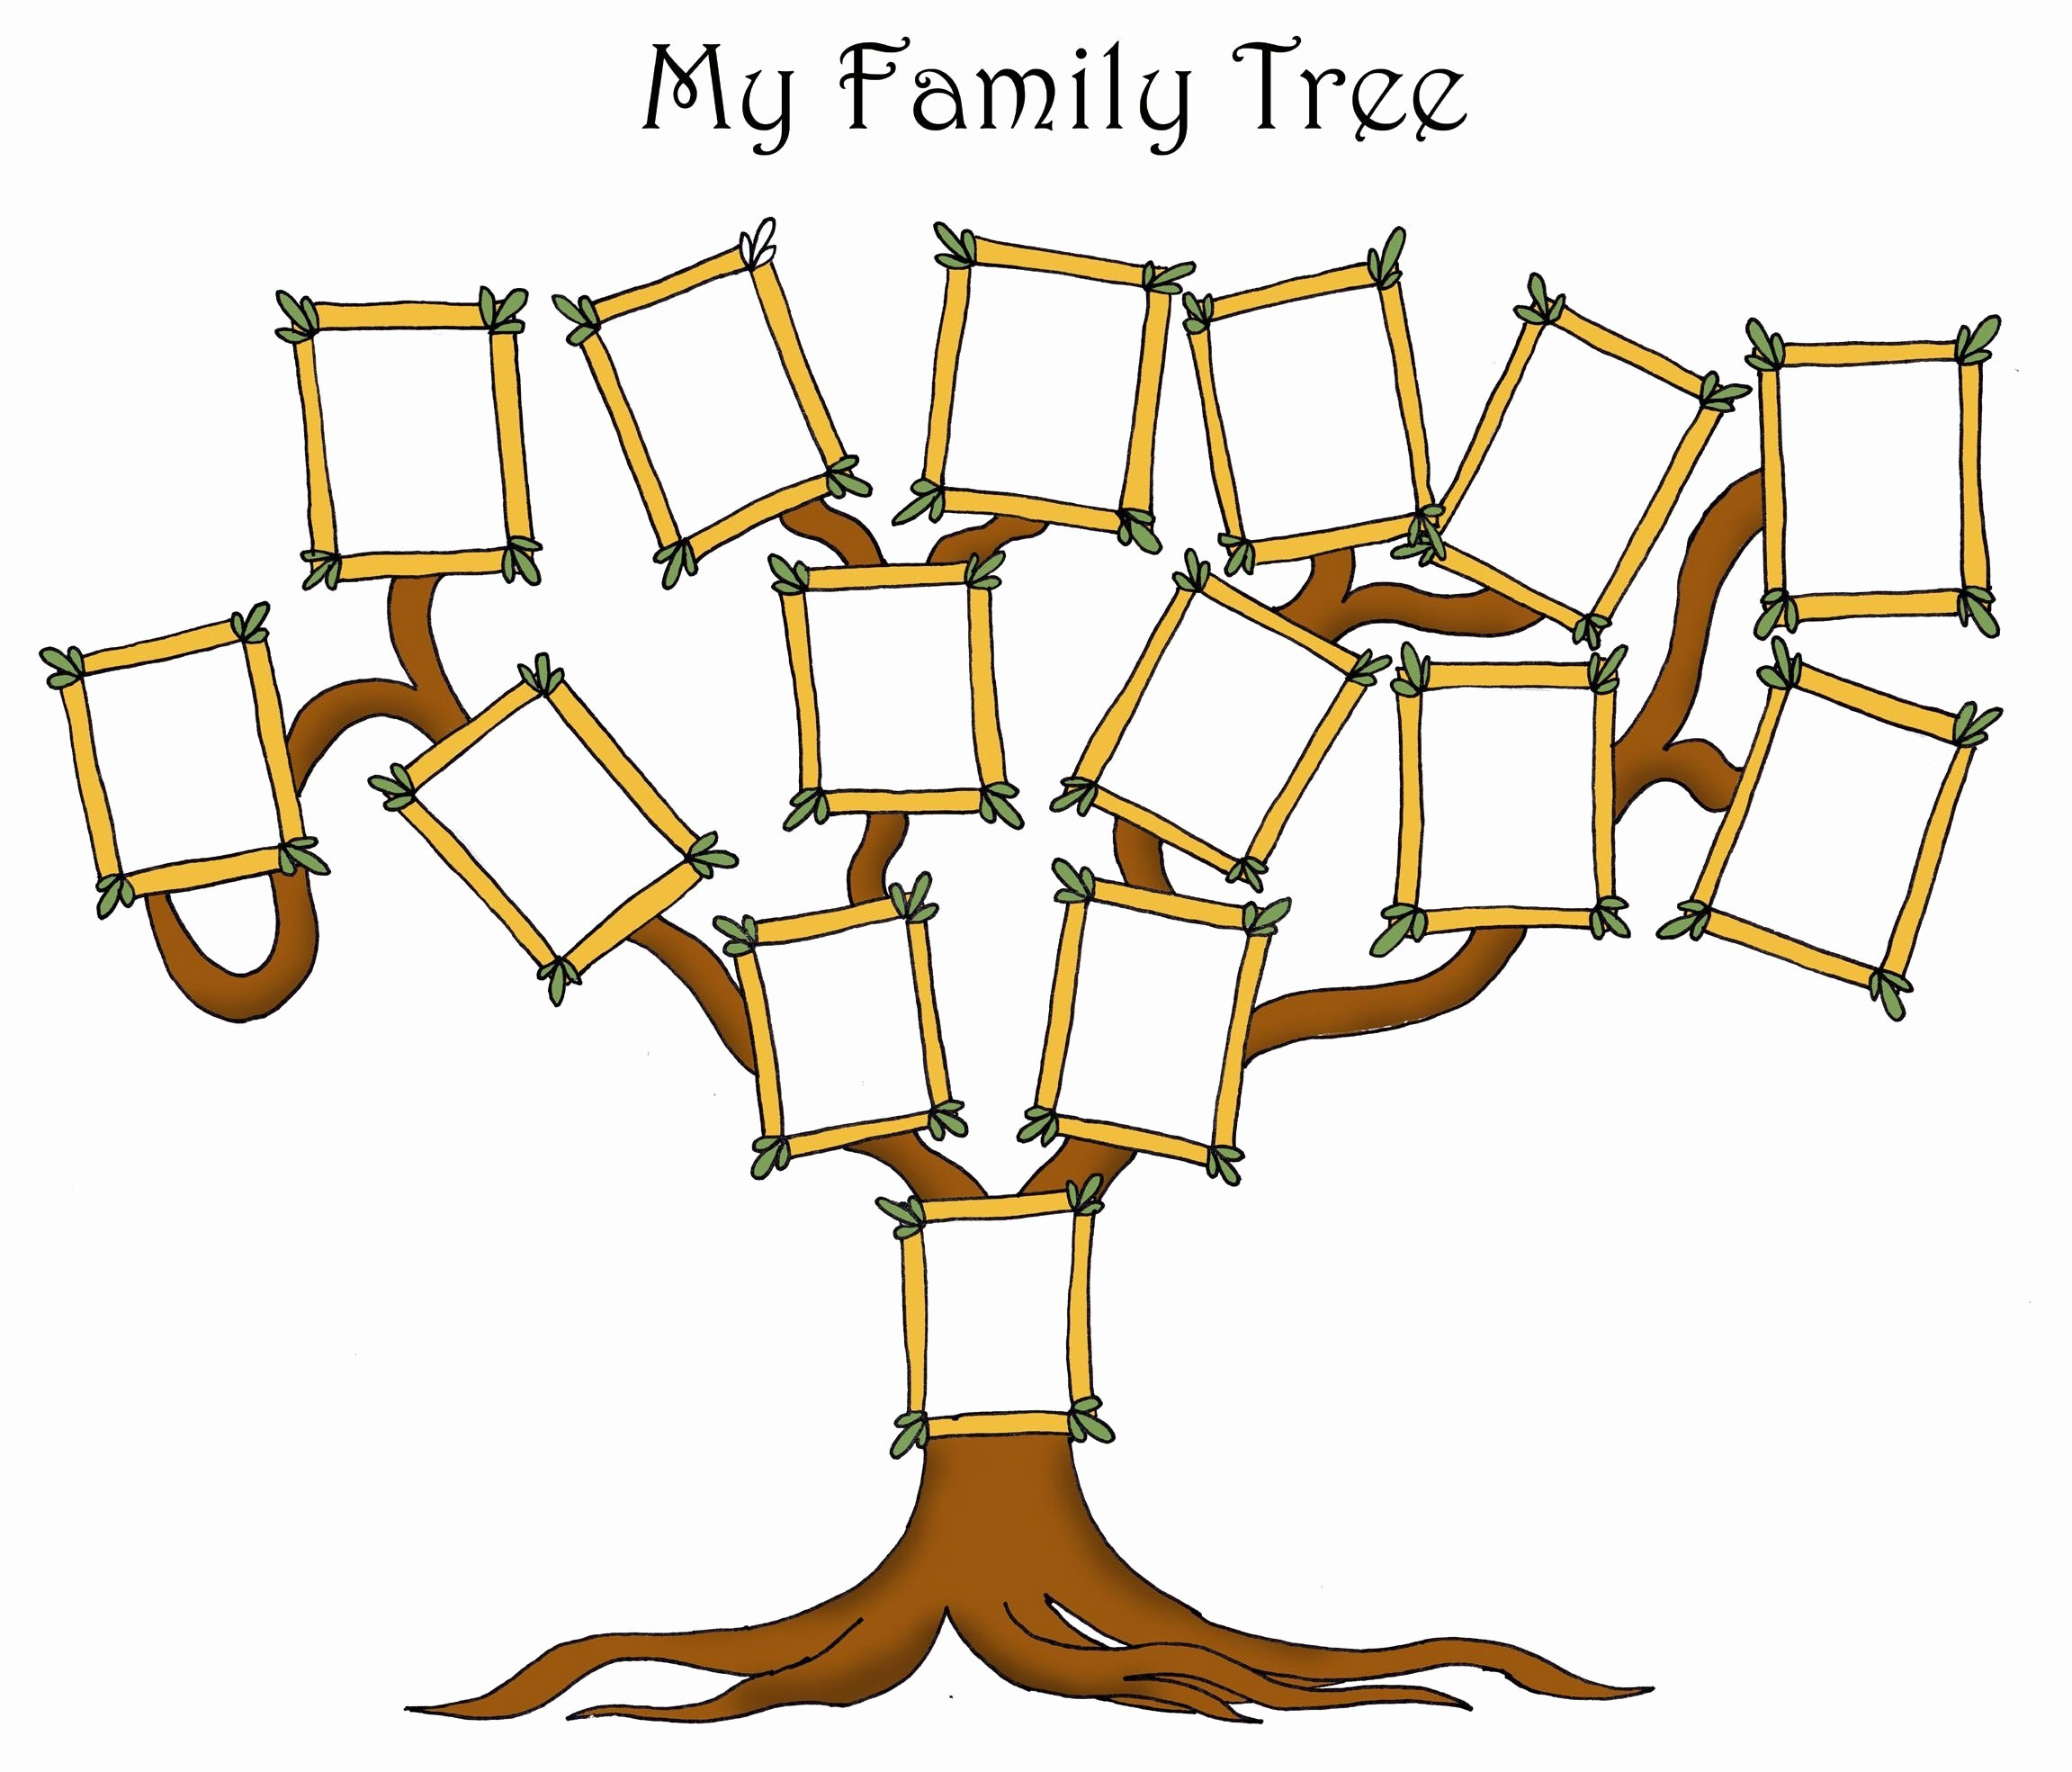 Family Tree Examples Images Inspirational Free Editable Family Tree Template Daily Roabox